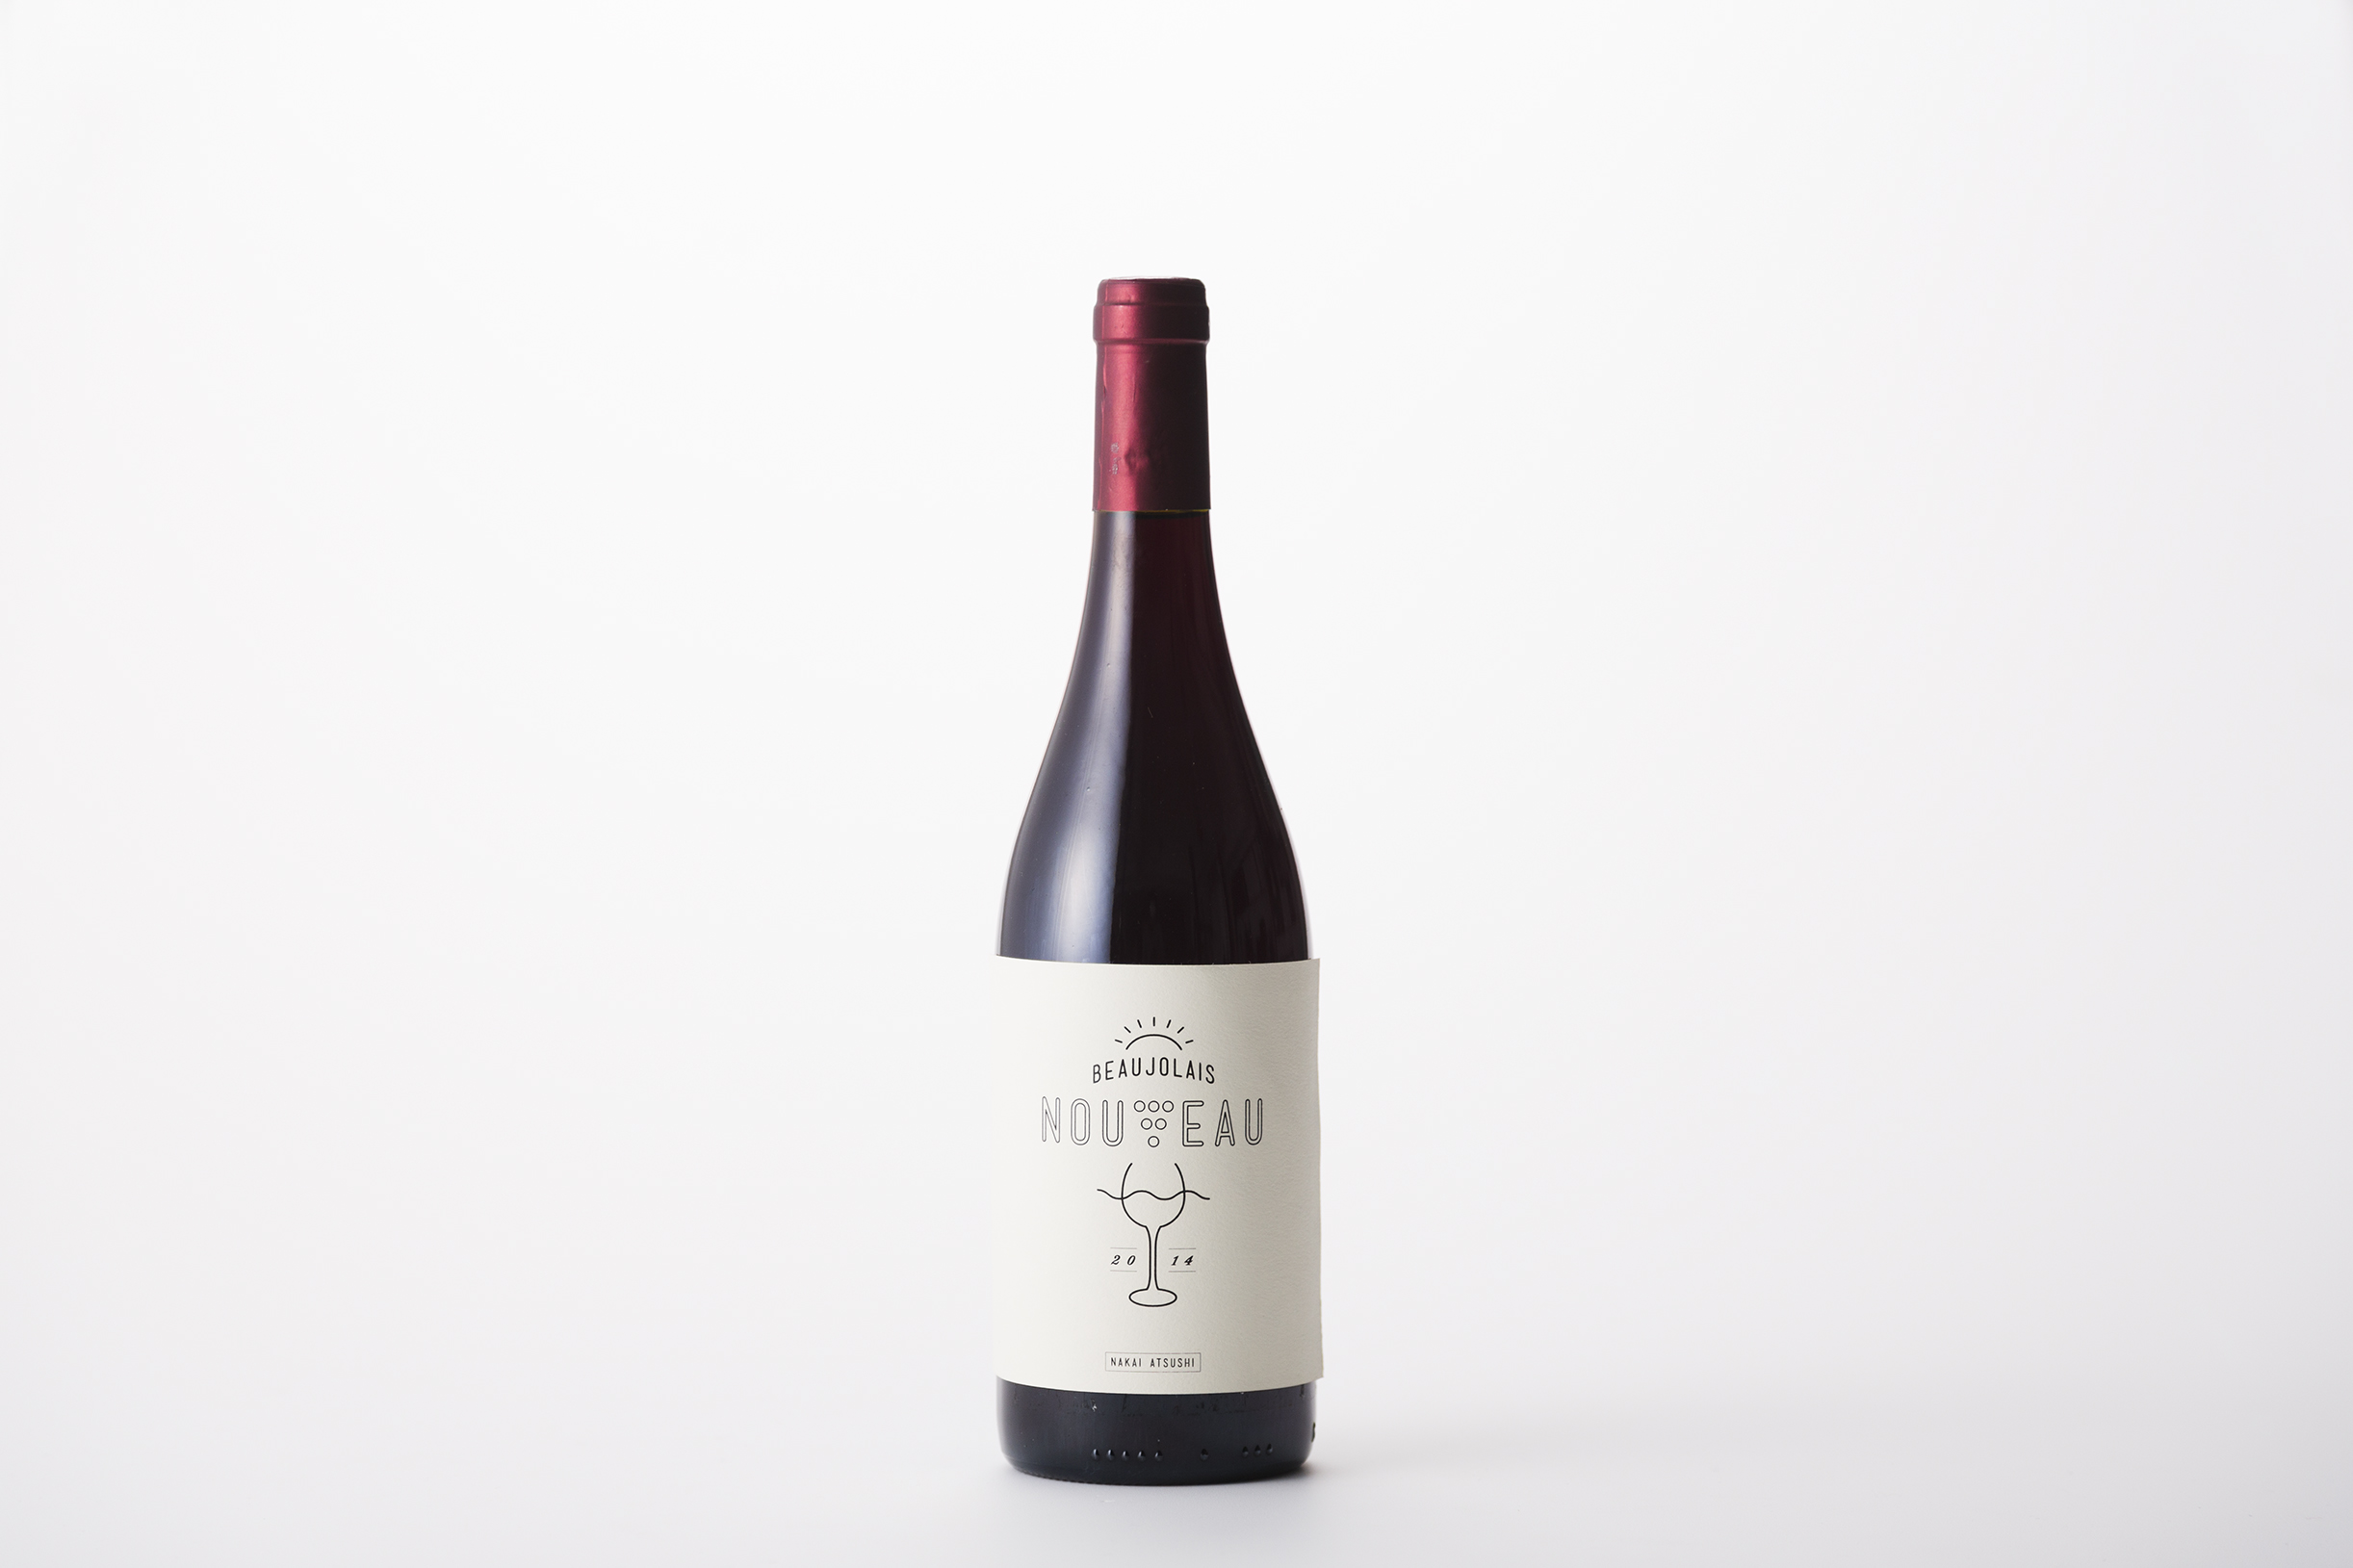 Wine Bottle | Beaujolais Nouveau